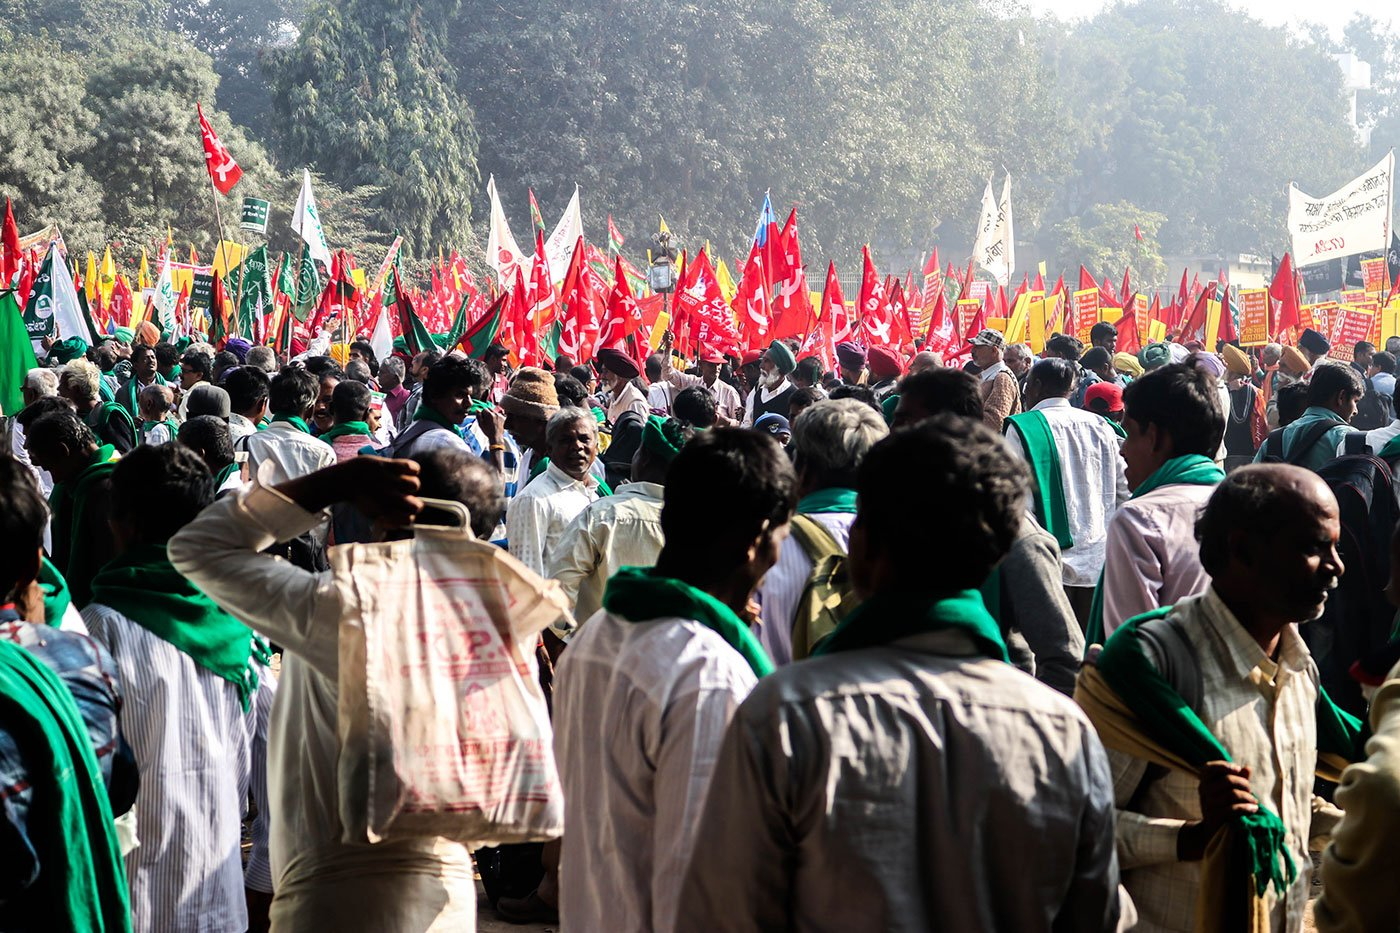 Farmers starting their March from Ramlila Maidan towards the Parliament street